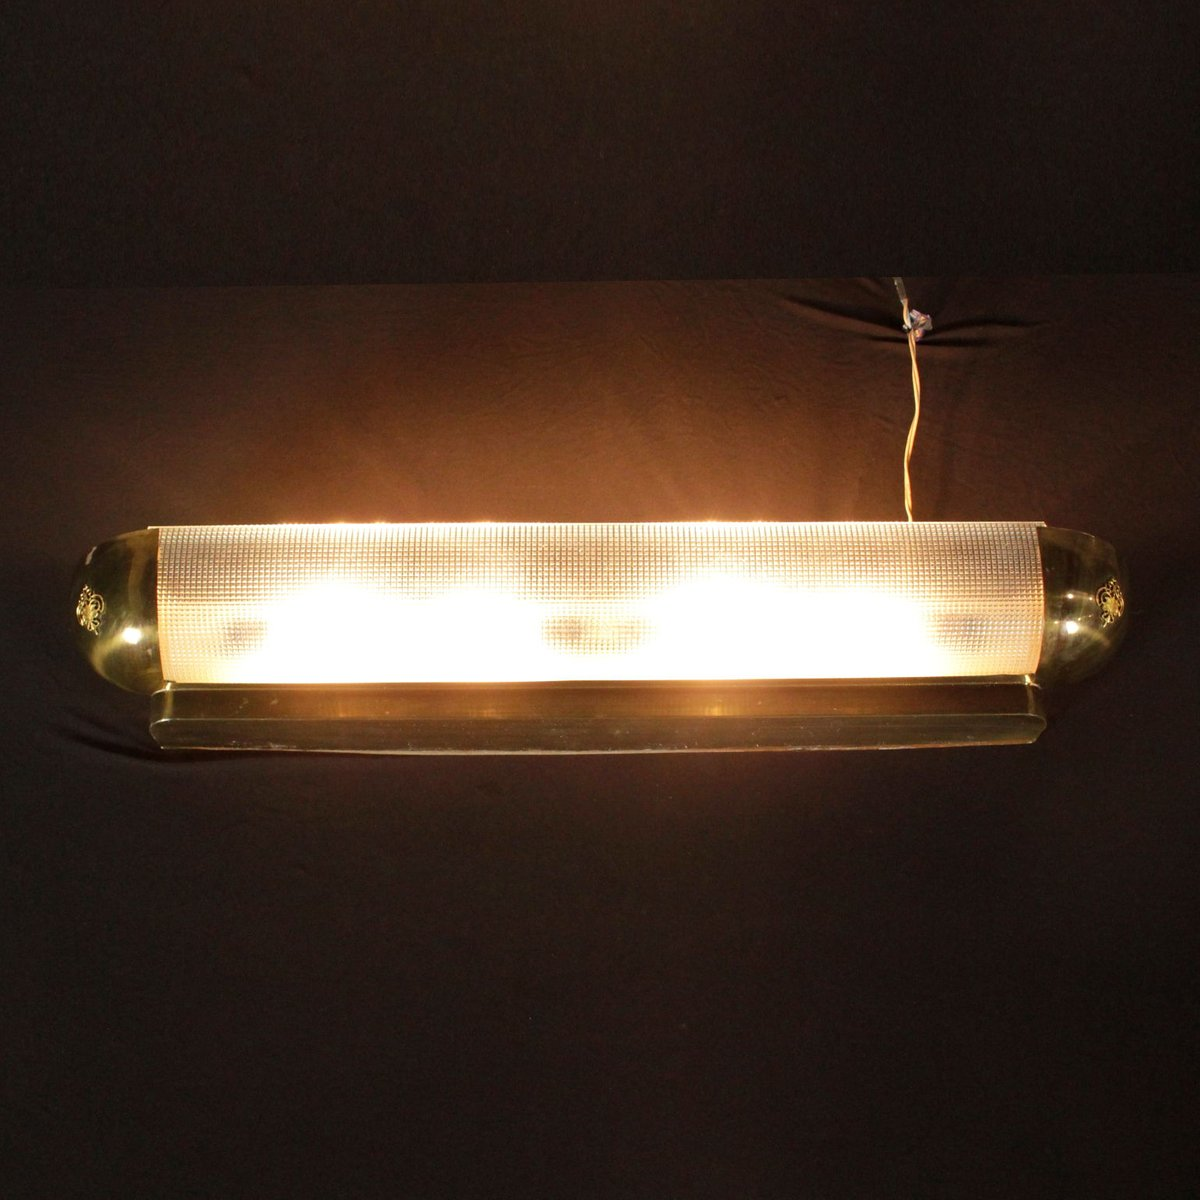 Pimlico Wall Lamp In Glass : Wall Lamp in Satin Glass & Brass, 1960s for sale at Pamono